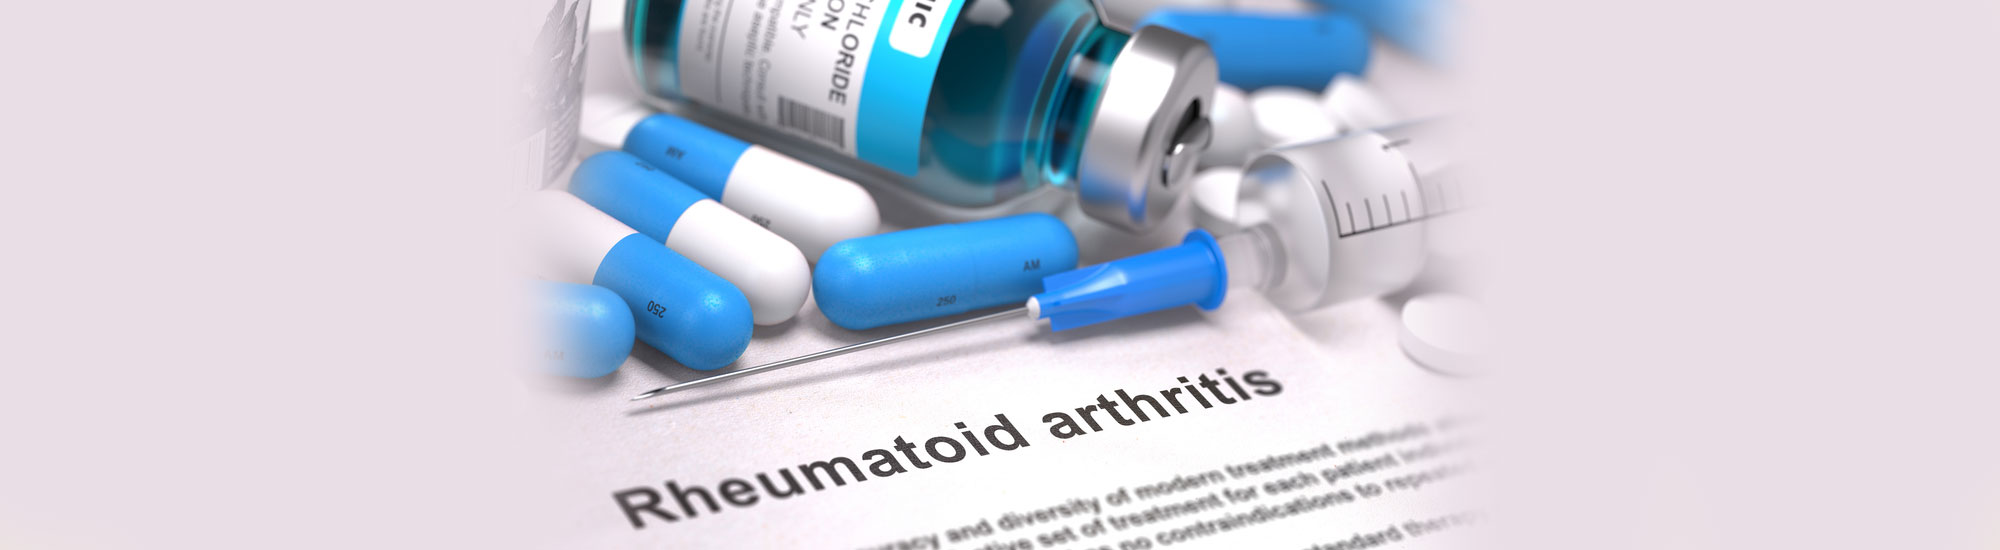 Ayurvedic treatment for Rheumatoid arthritis References